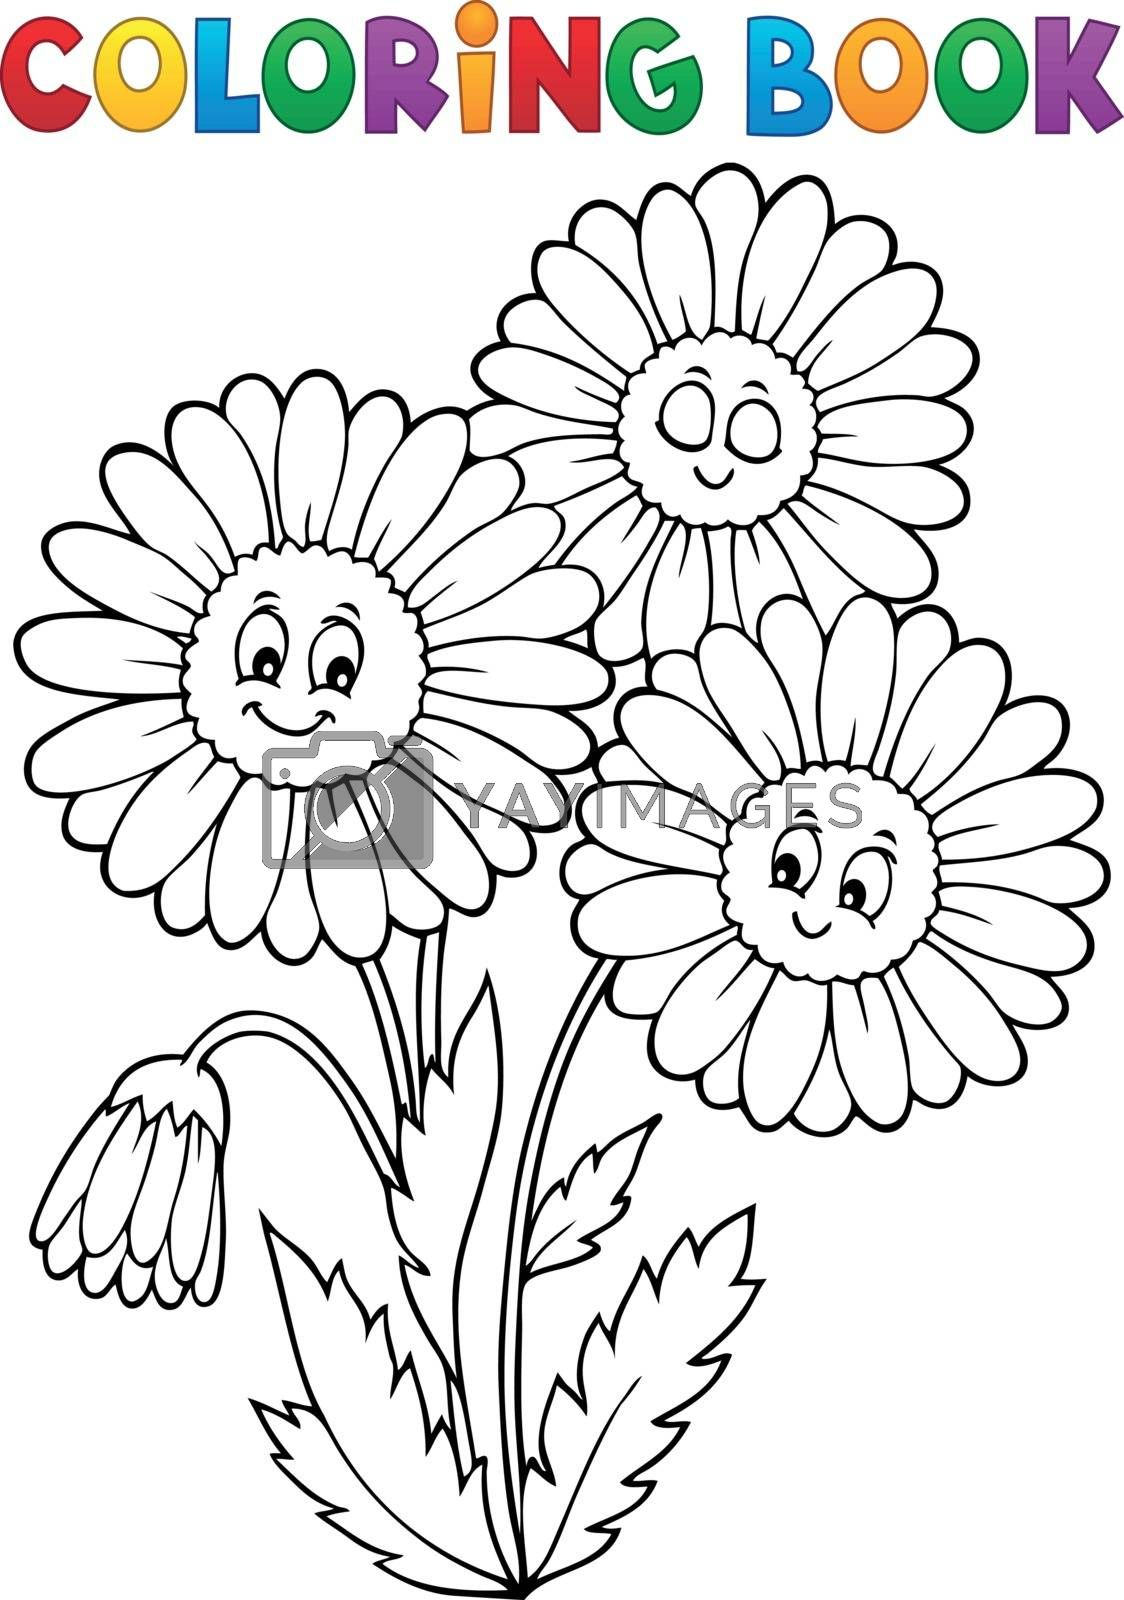 Coloring book daisy flower image 1 - eps10 vector illustration.